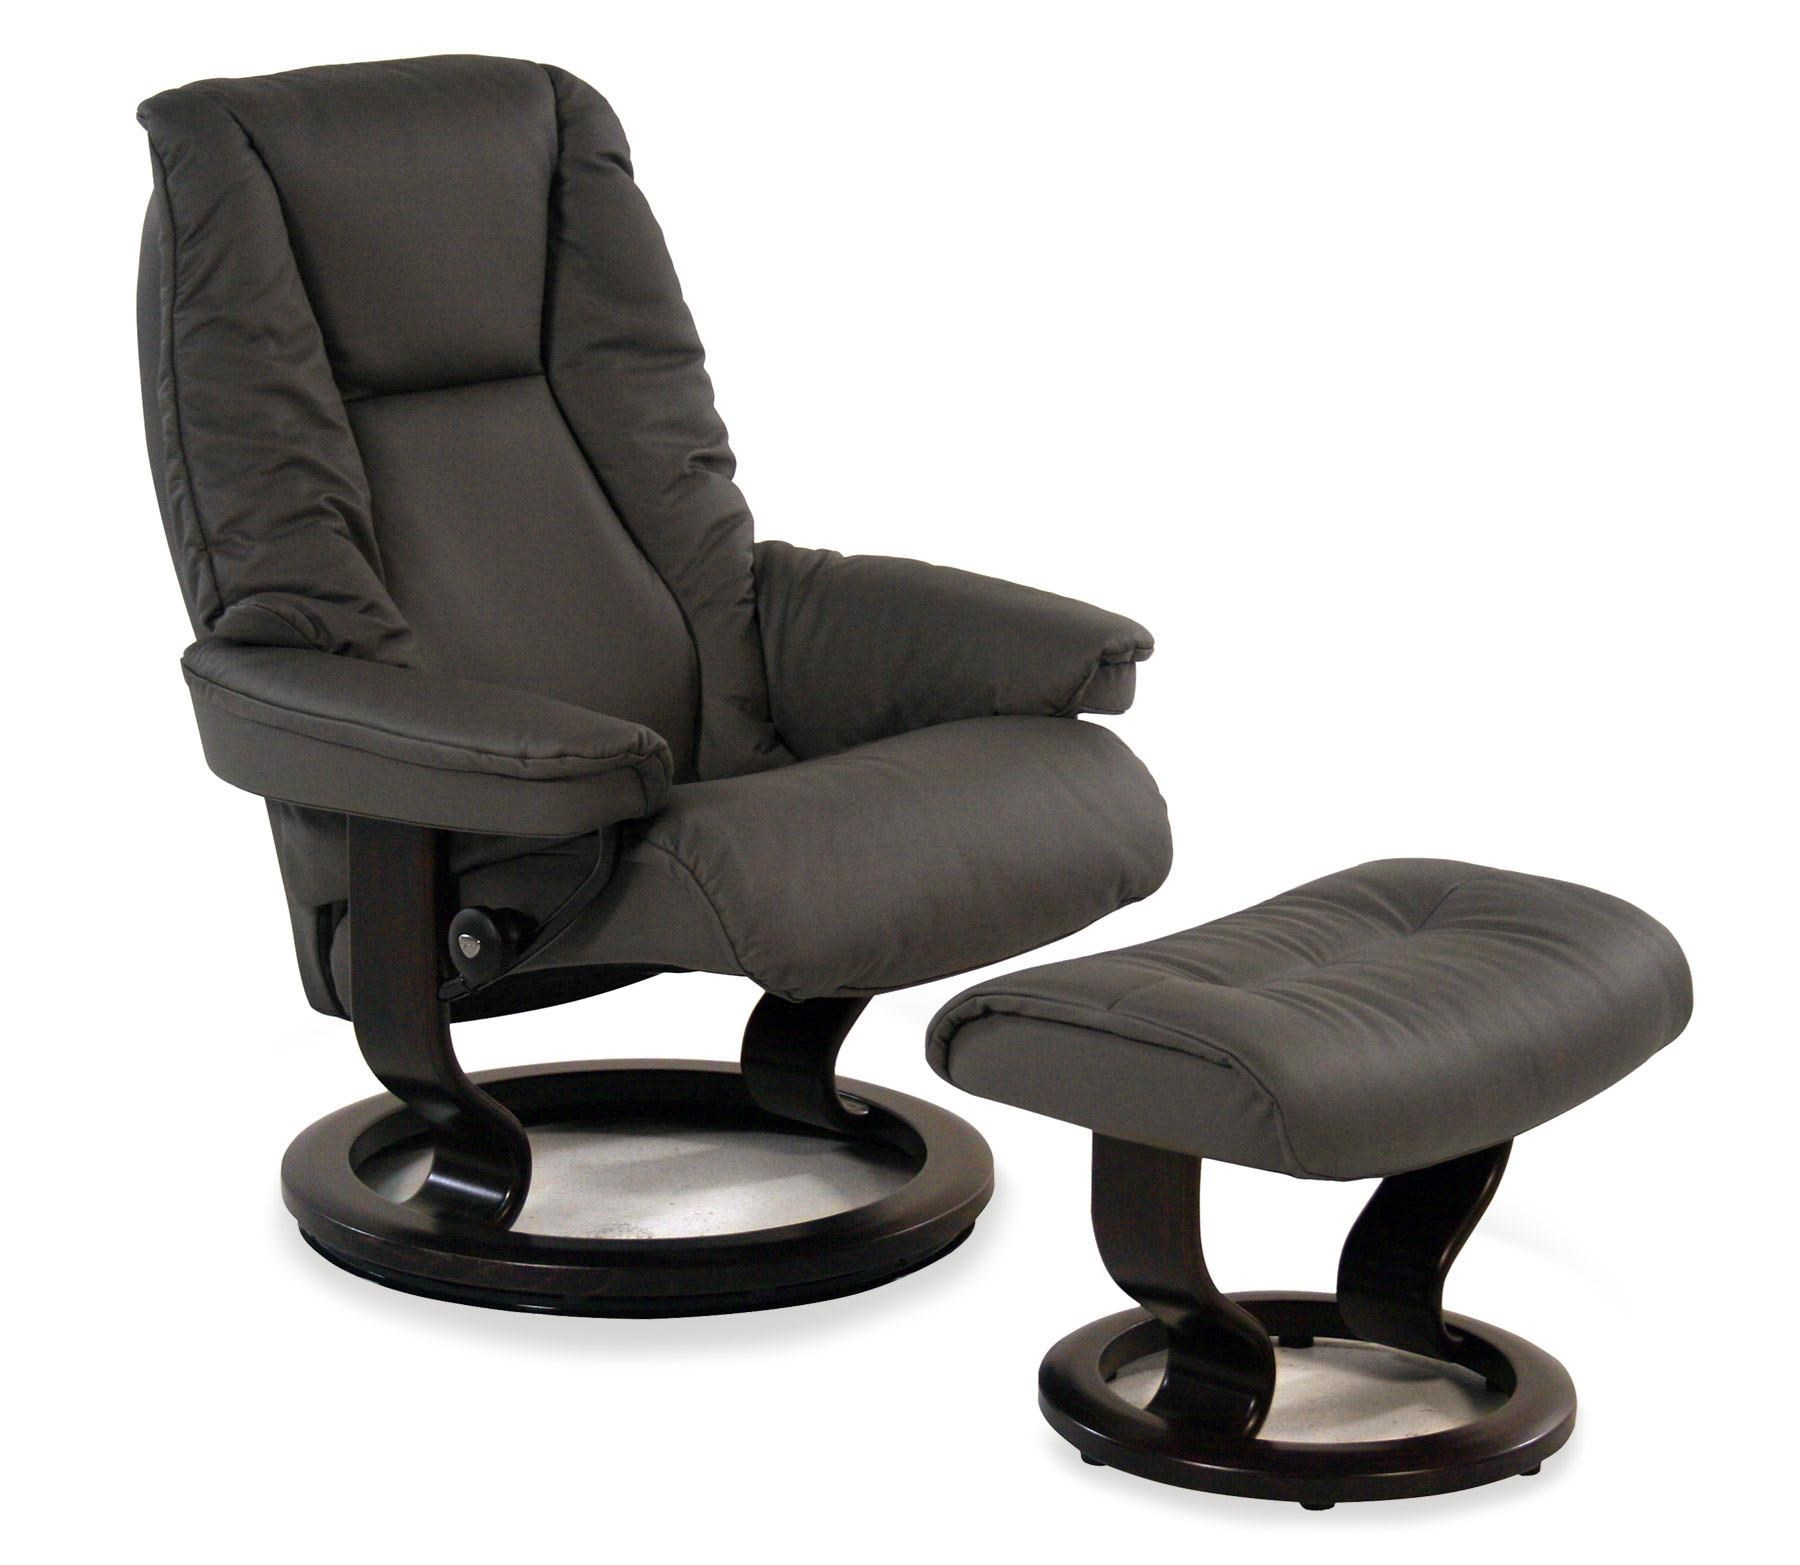 Ekornes Stressless Live Medium Reclining Chair Ottoman Paloma Metal Grey W Classic Base By Stressless By Ekornes At Rotmans